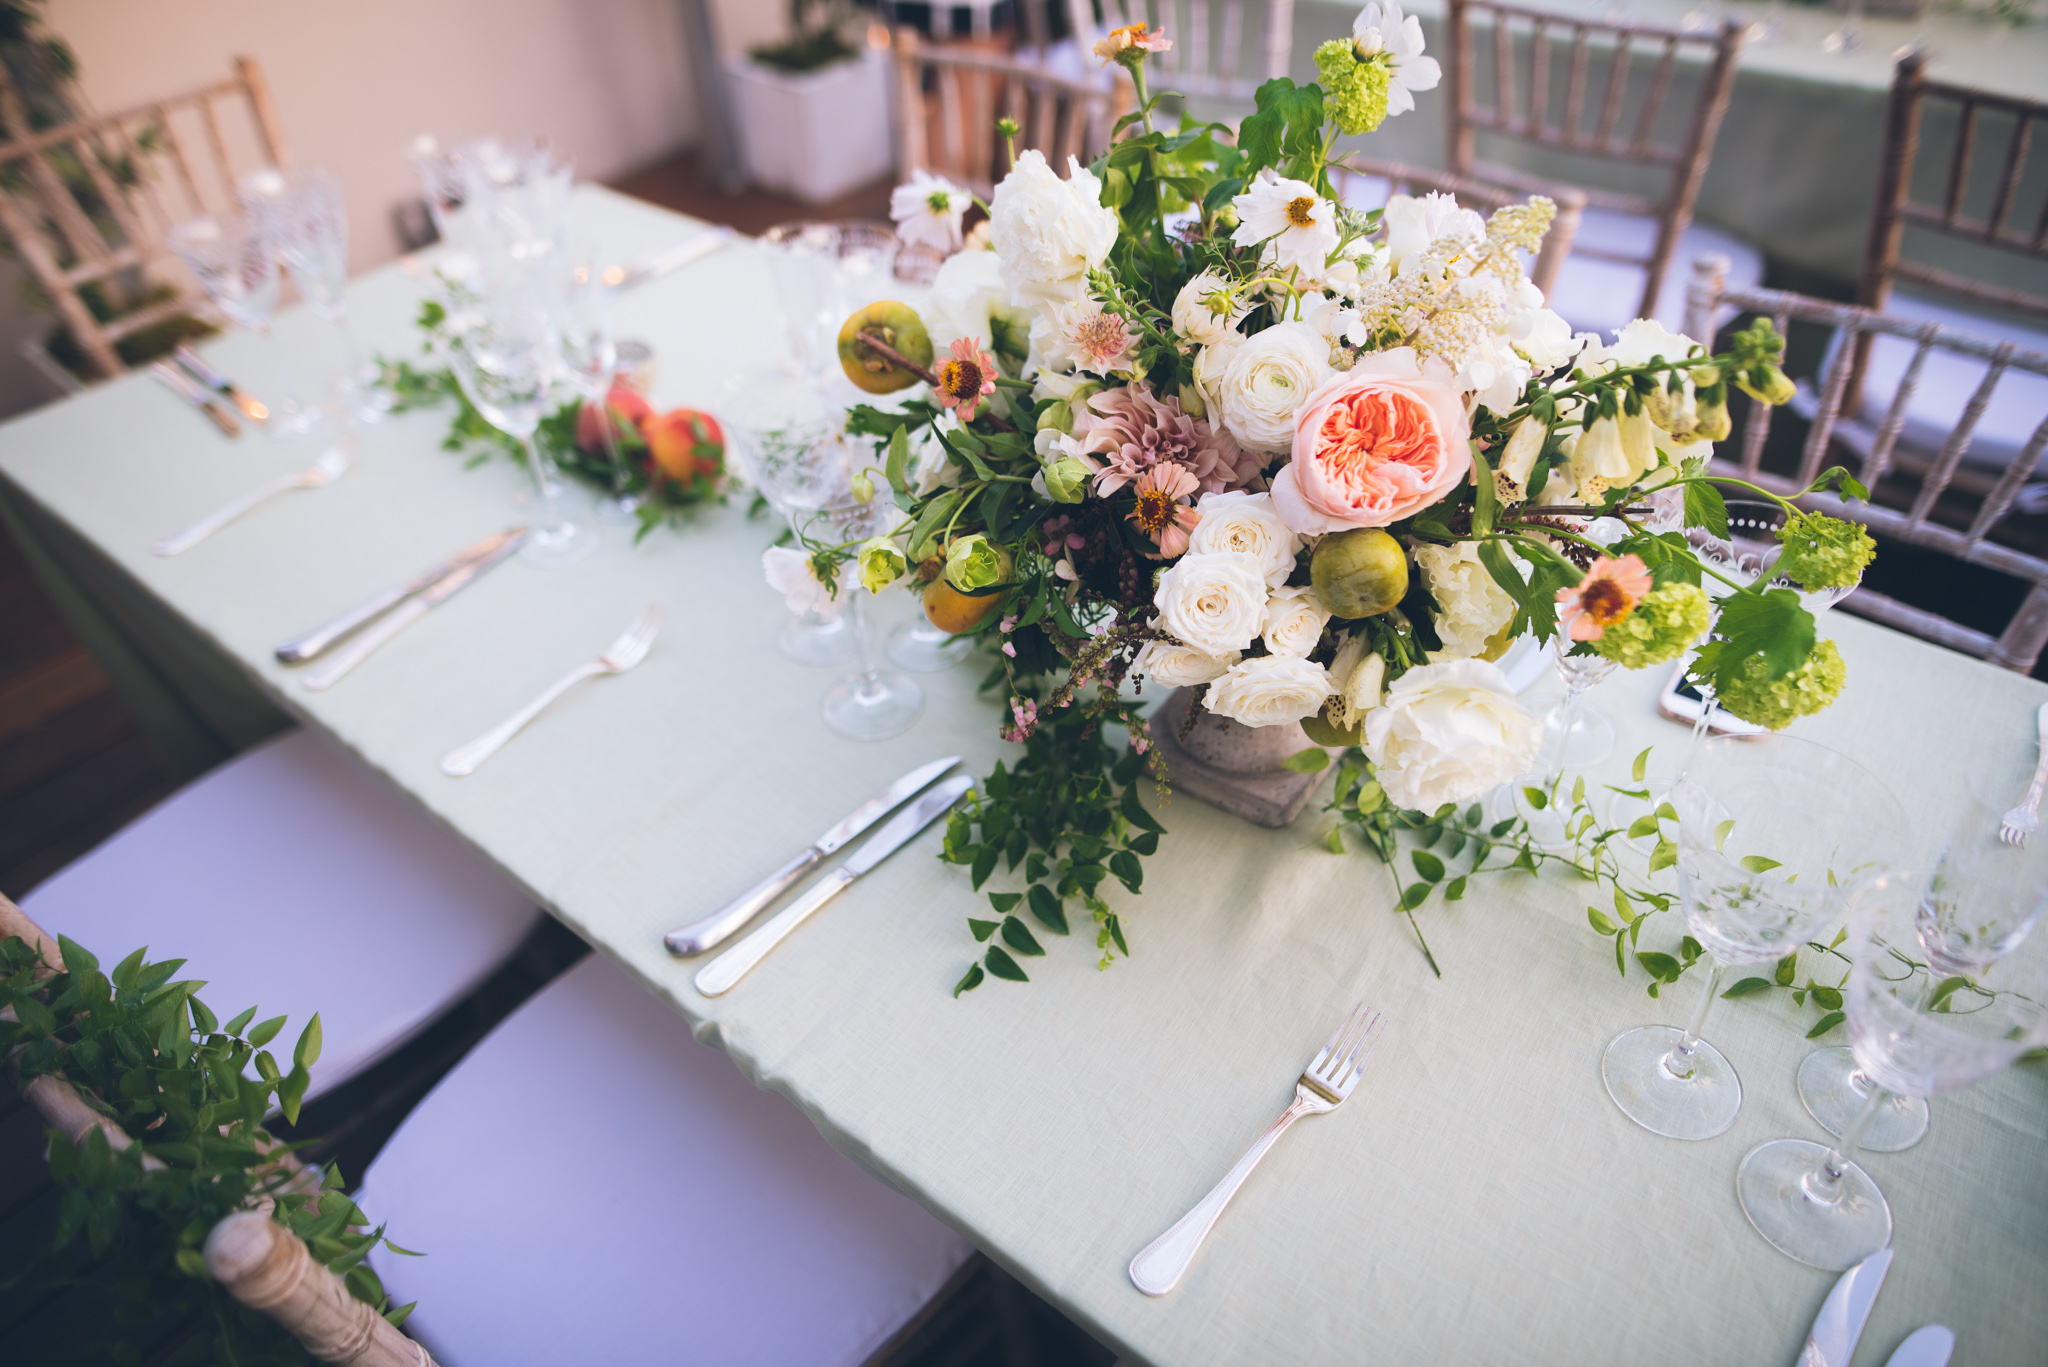 woman getting married - 21 GORGEOUS IDEAS FOR A FARM TO TABLE WEDDING